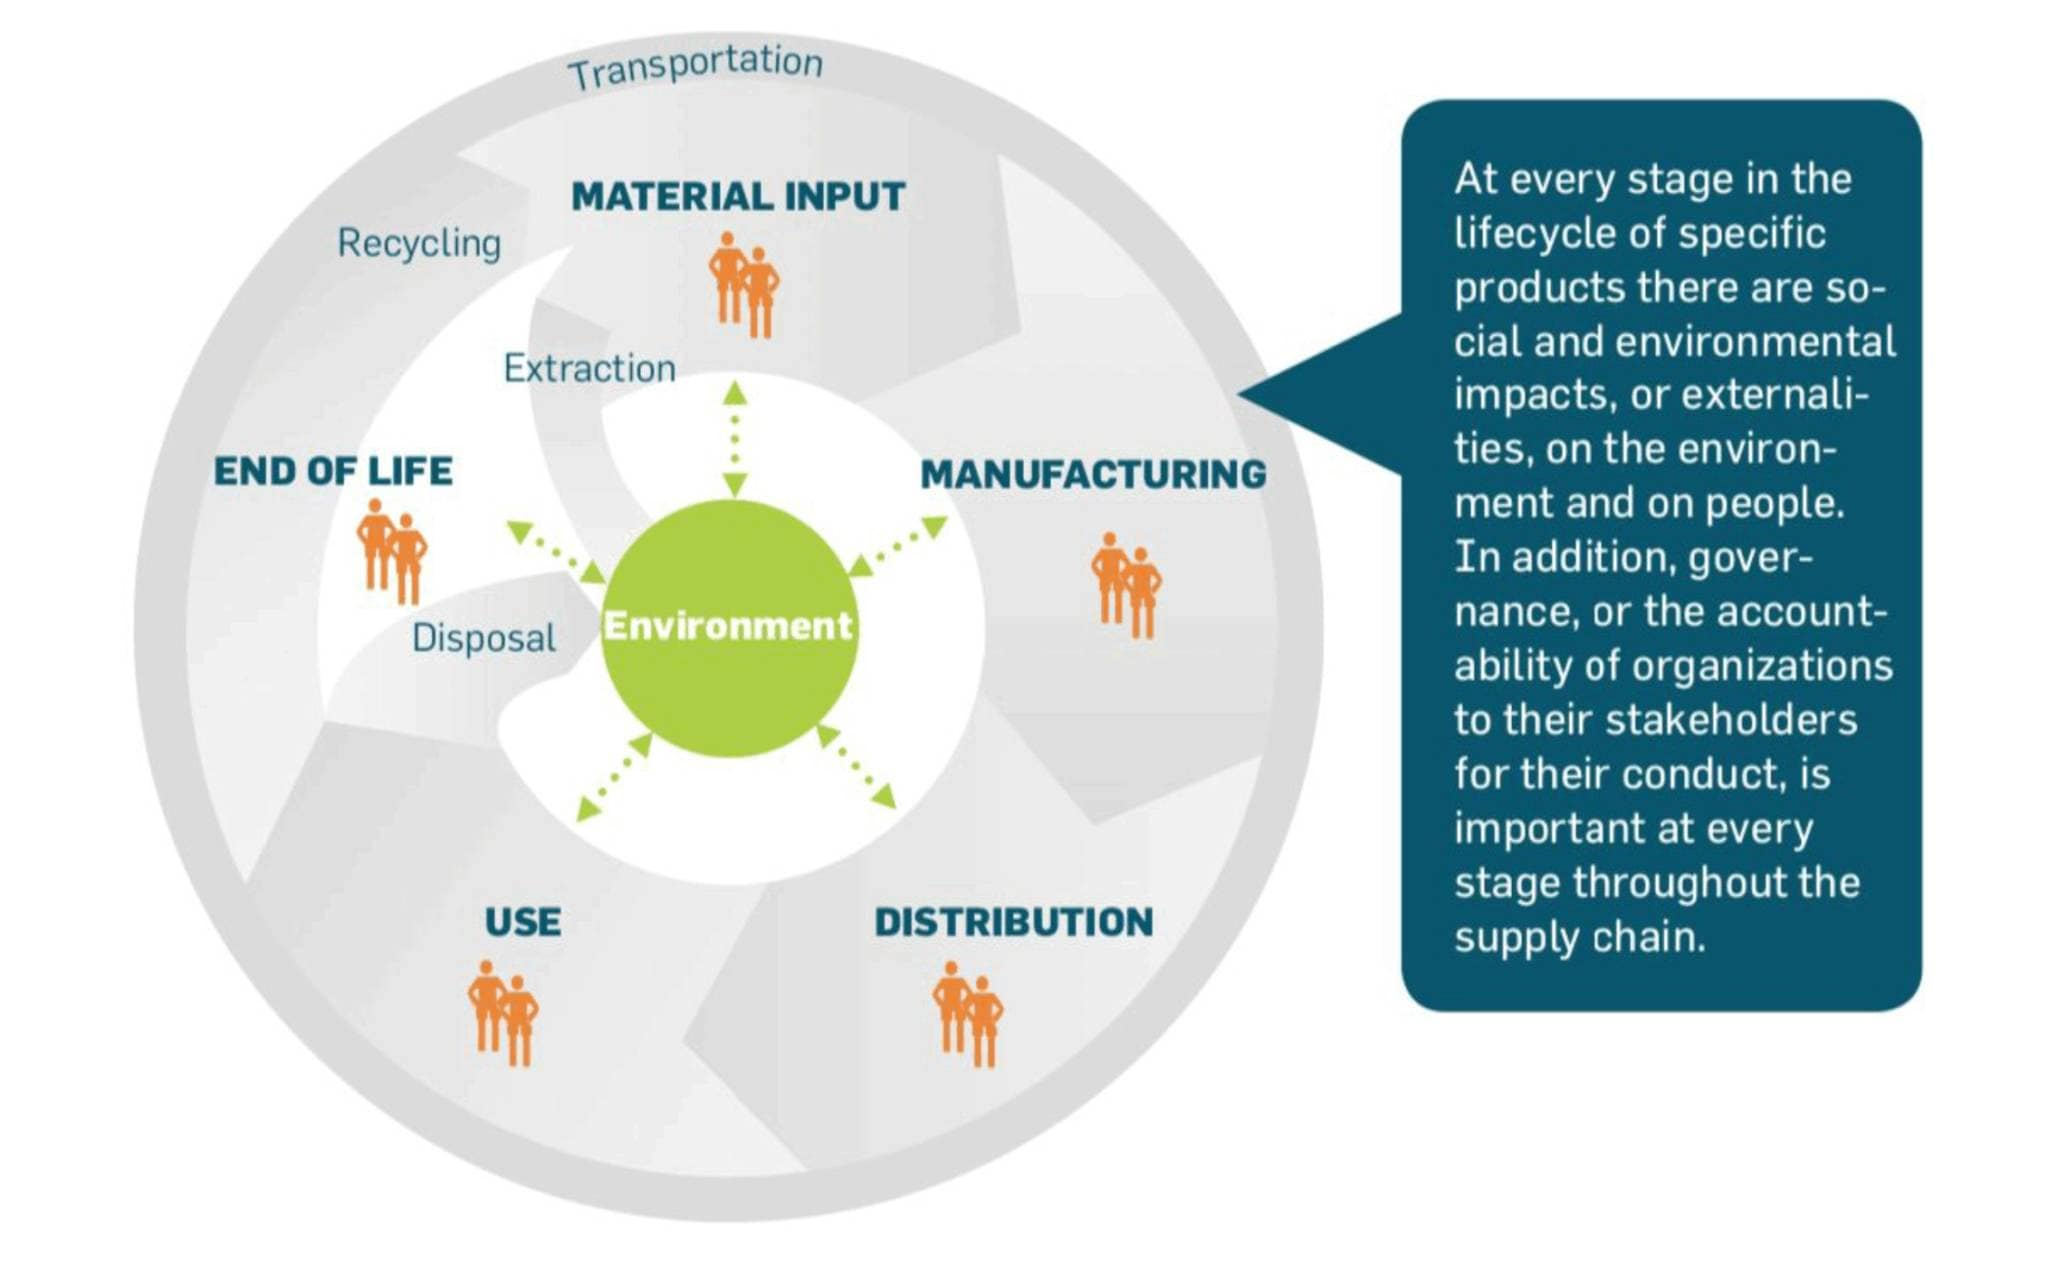 Global supply chain environmental, social and economic impacts